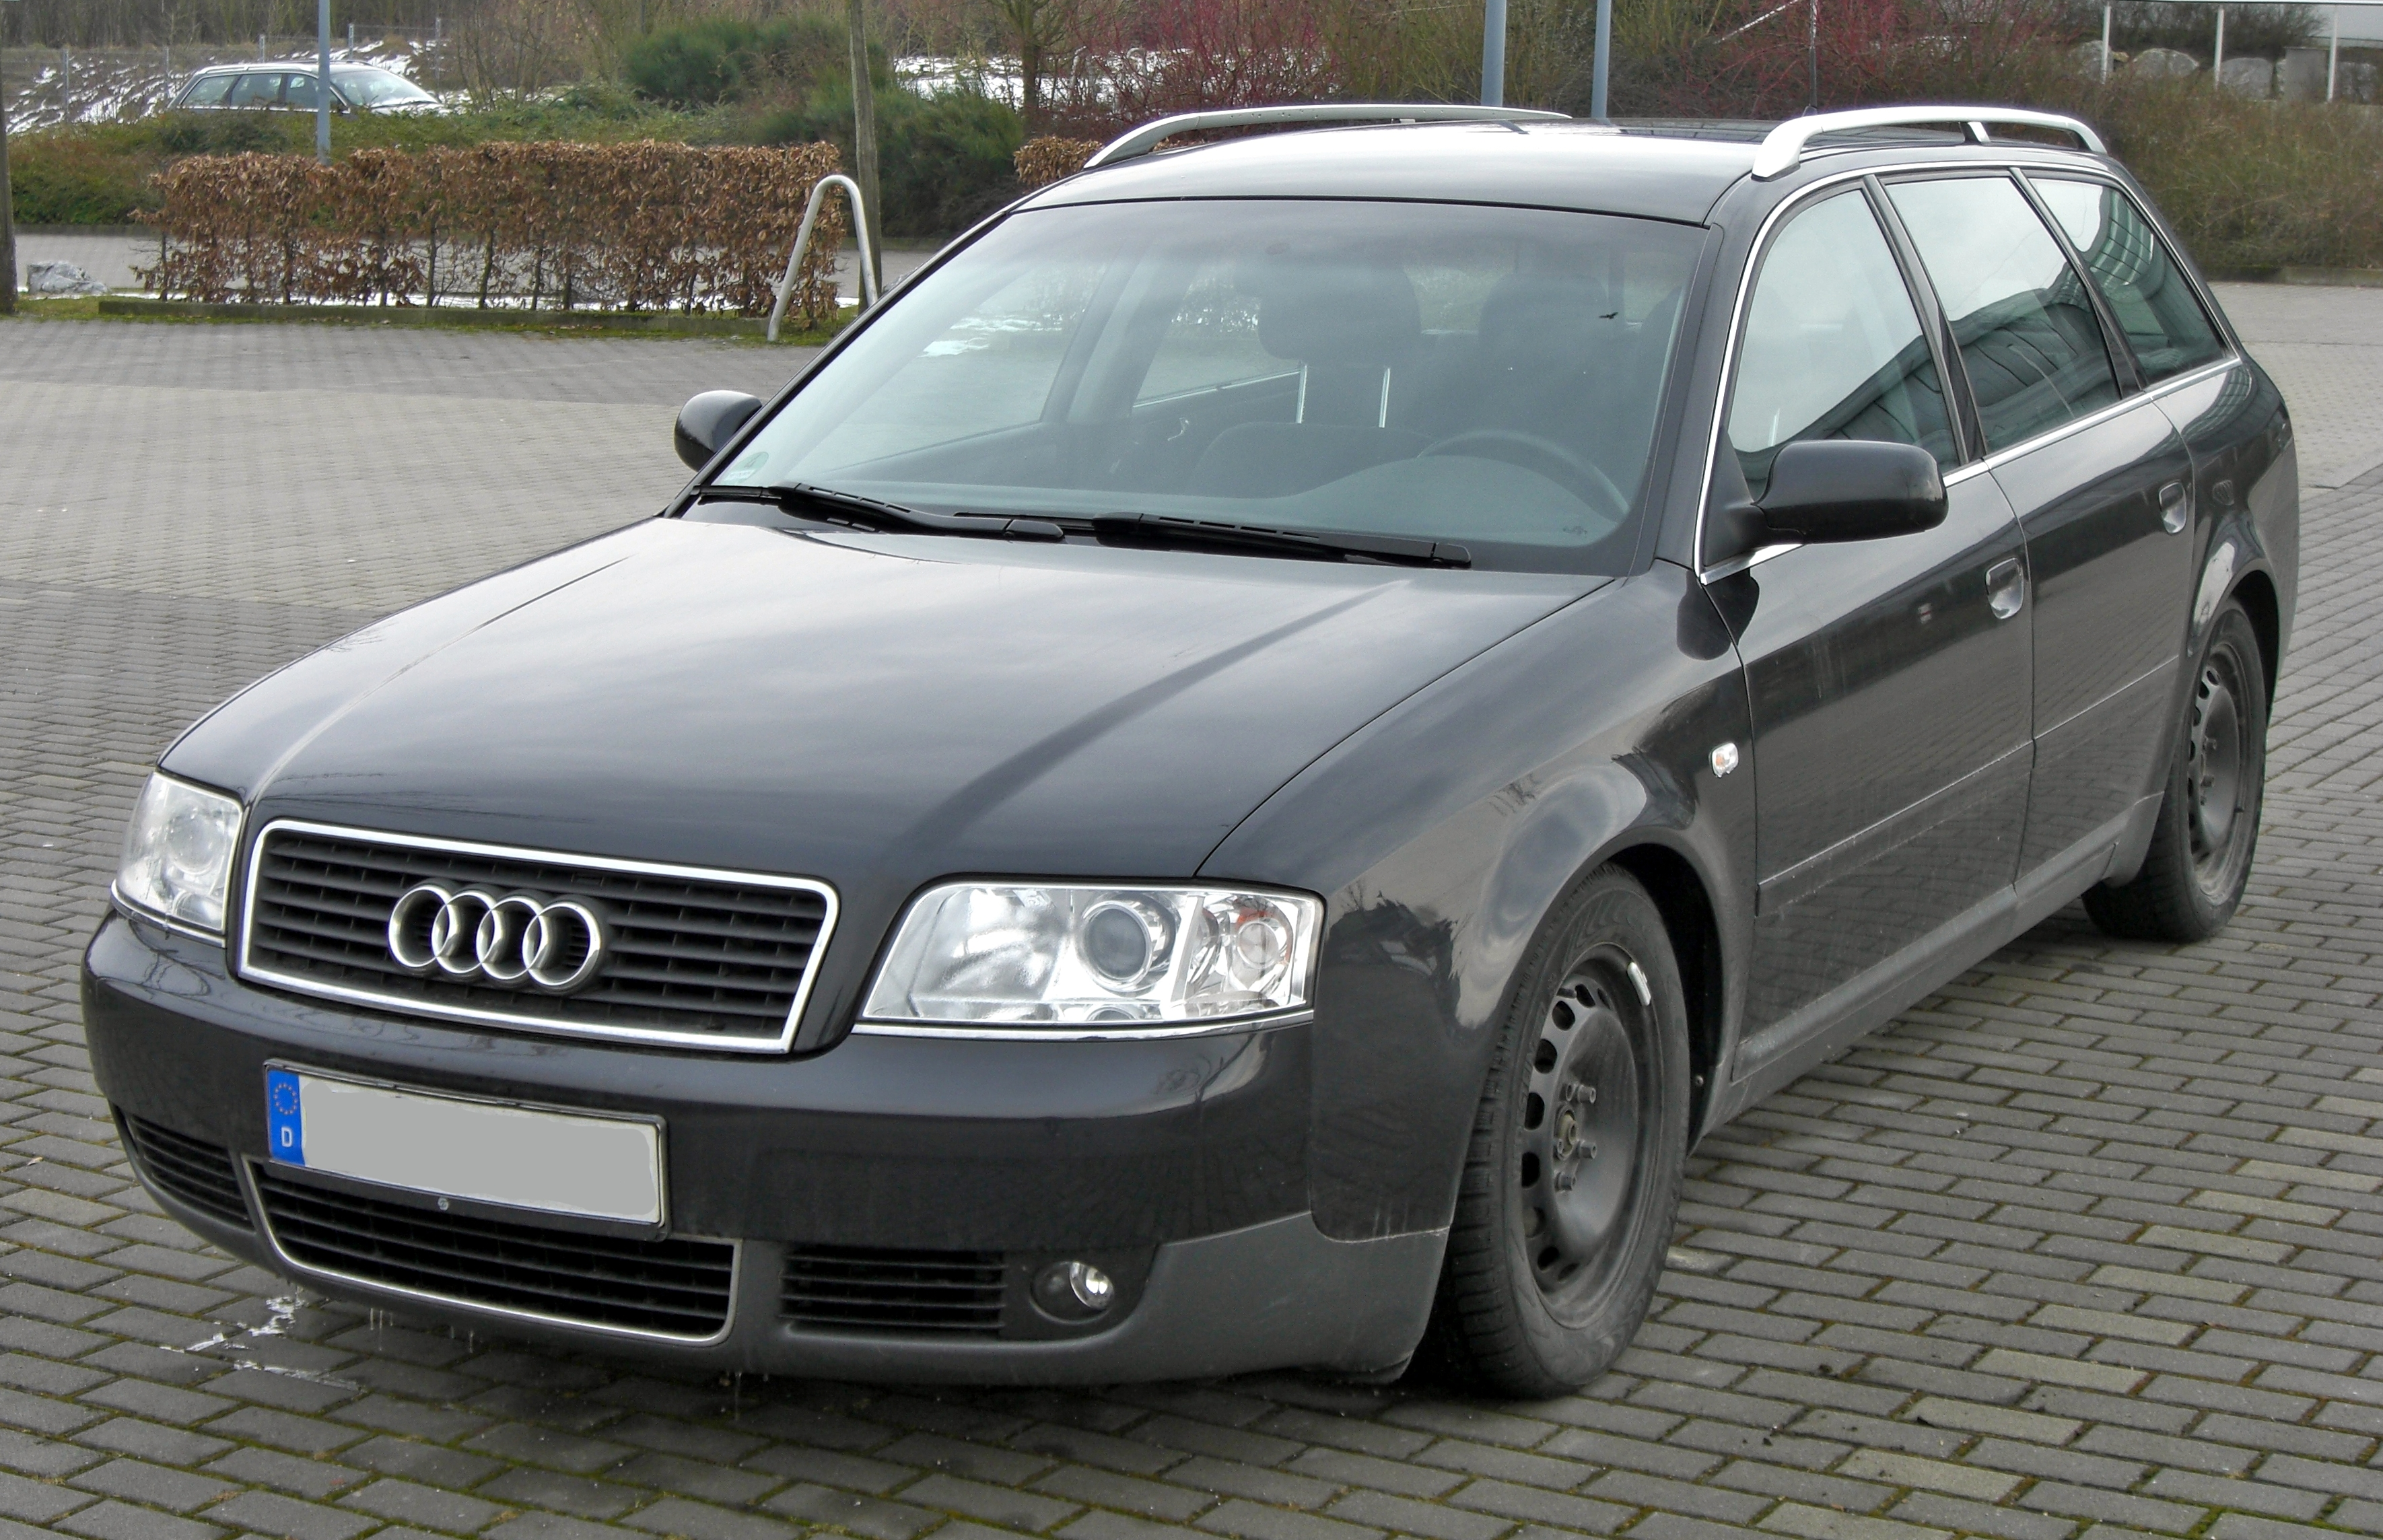 file audi a6 c5 avant 20090215 wikimedia commons. Black Bedroom Furniture Sets. Home Design Ideas